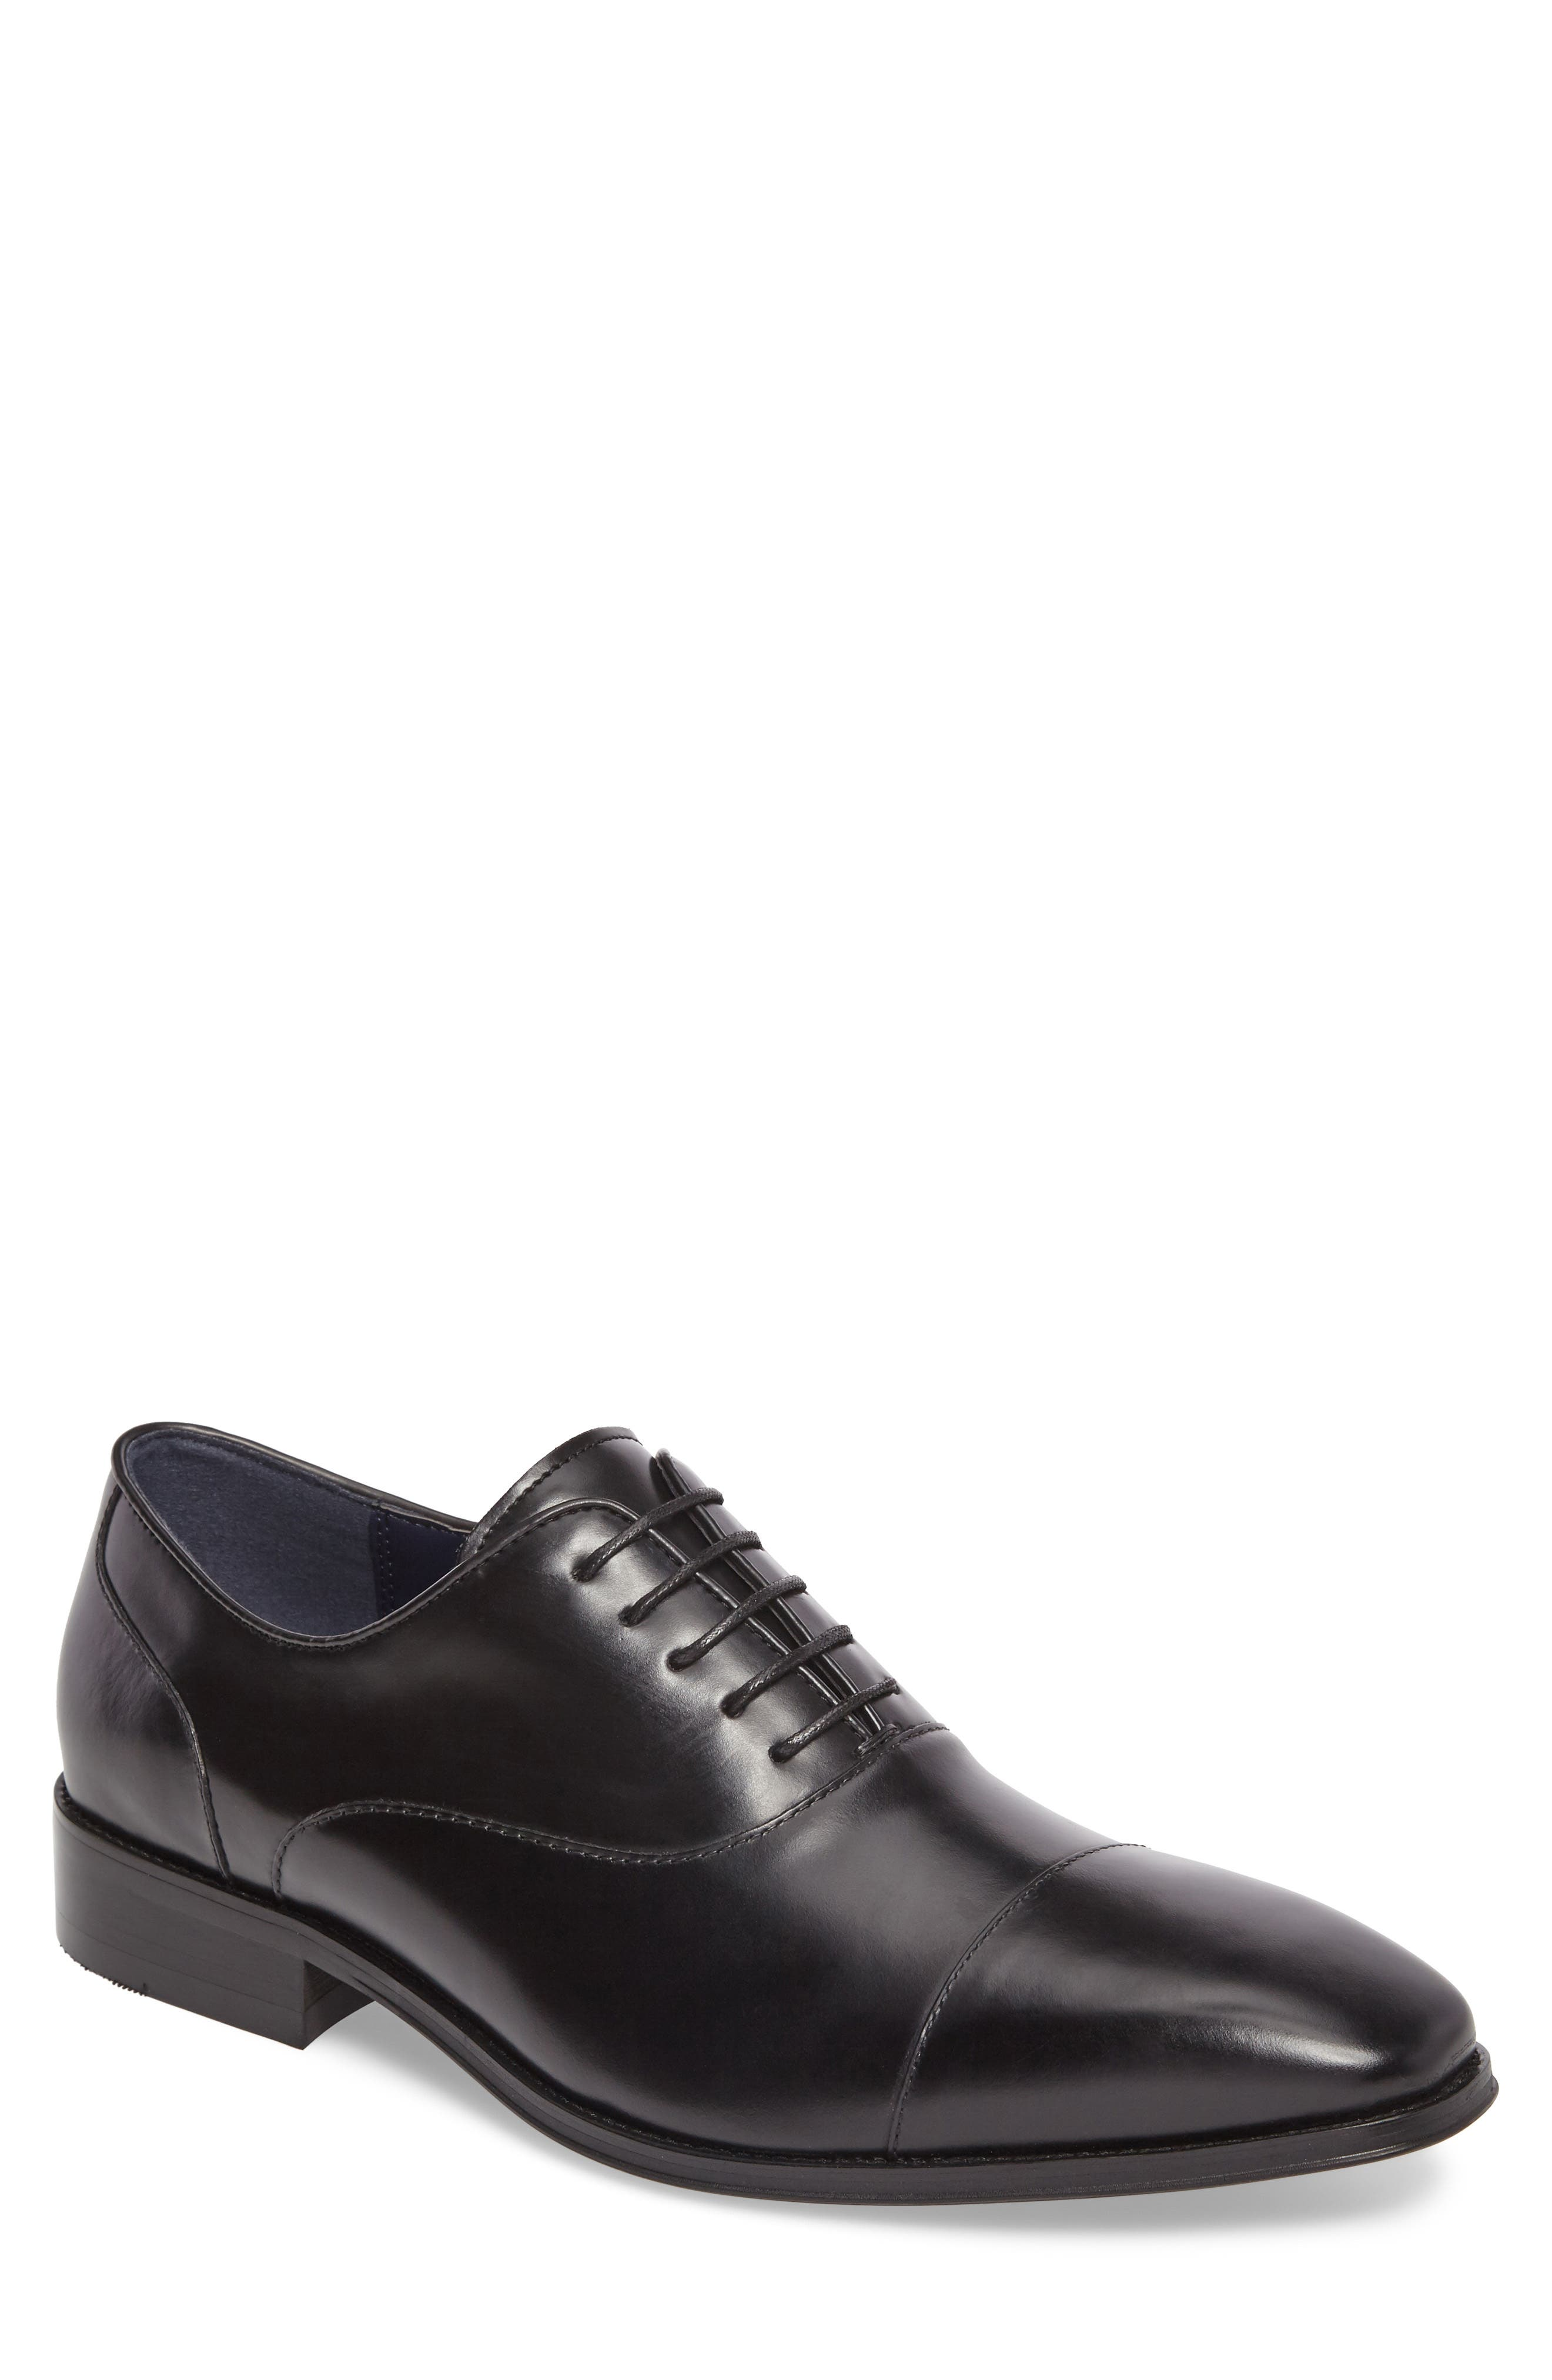 Main Image - Kenneth Cole Reaction Cap Toe Oxford (Men)